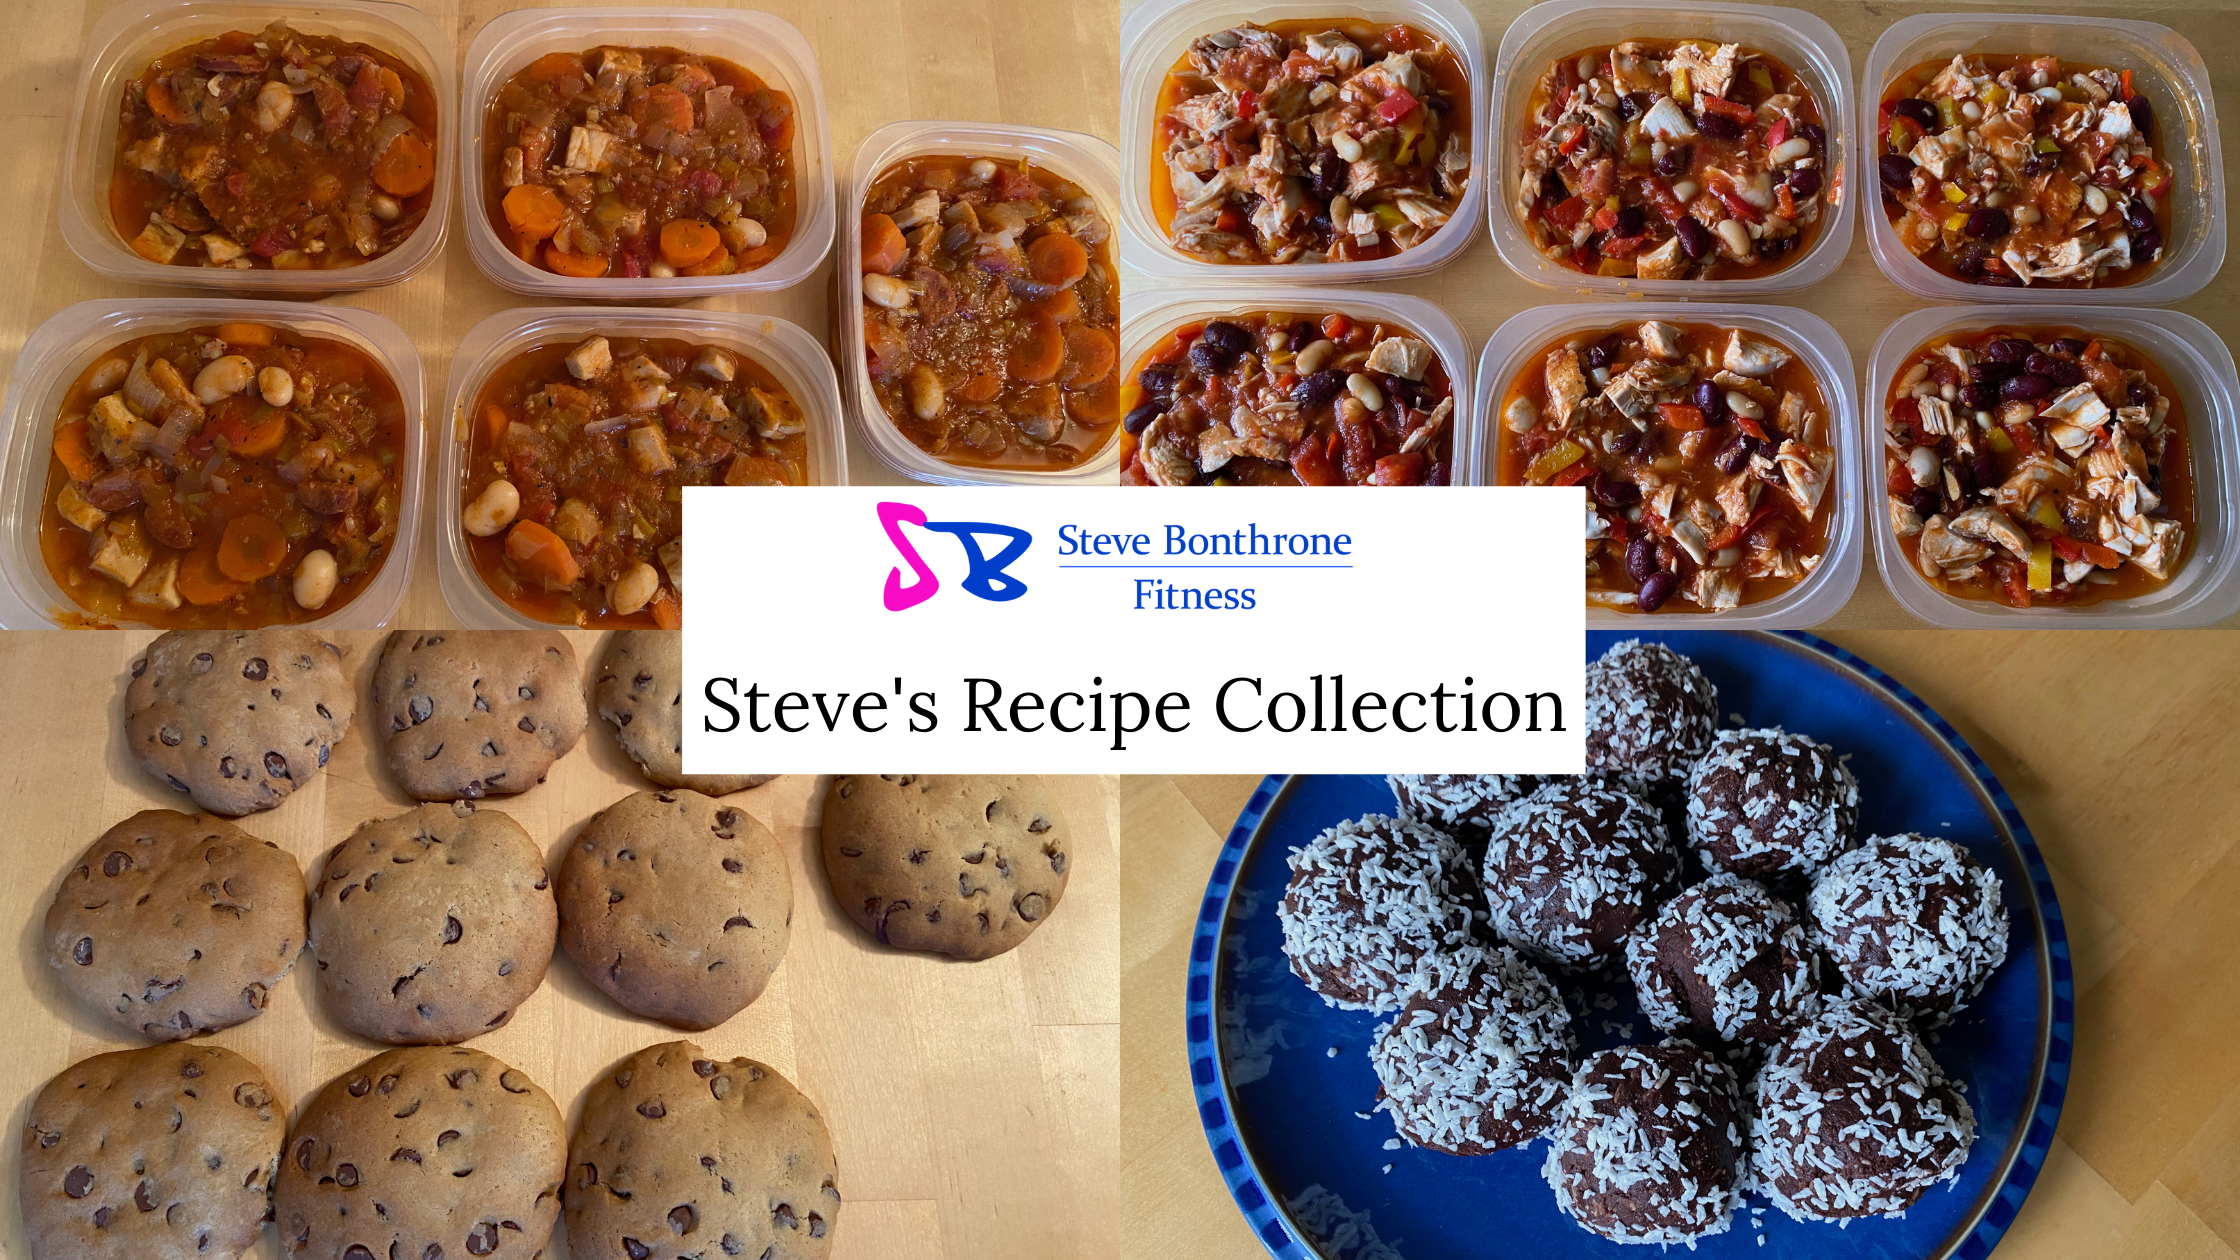 Steve's Recipe Collection | Steve Bonthrone Fitness